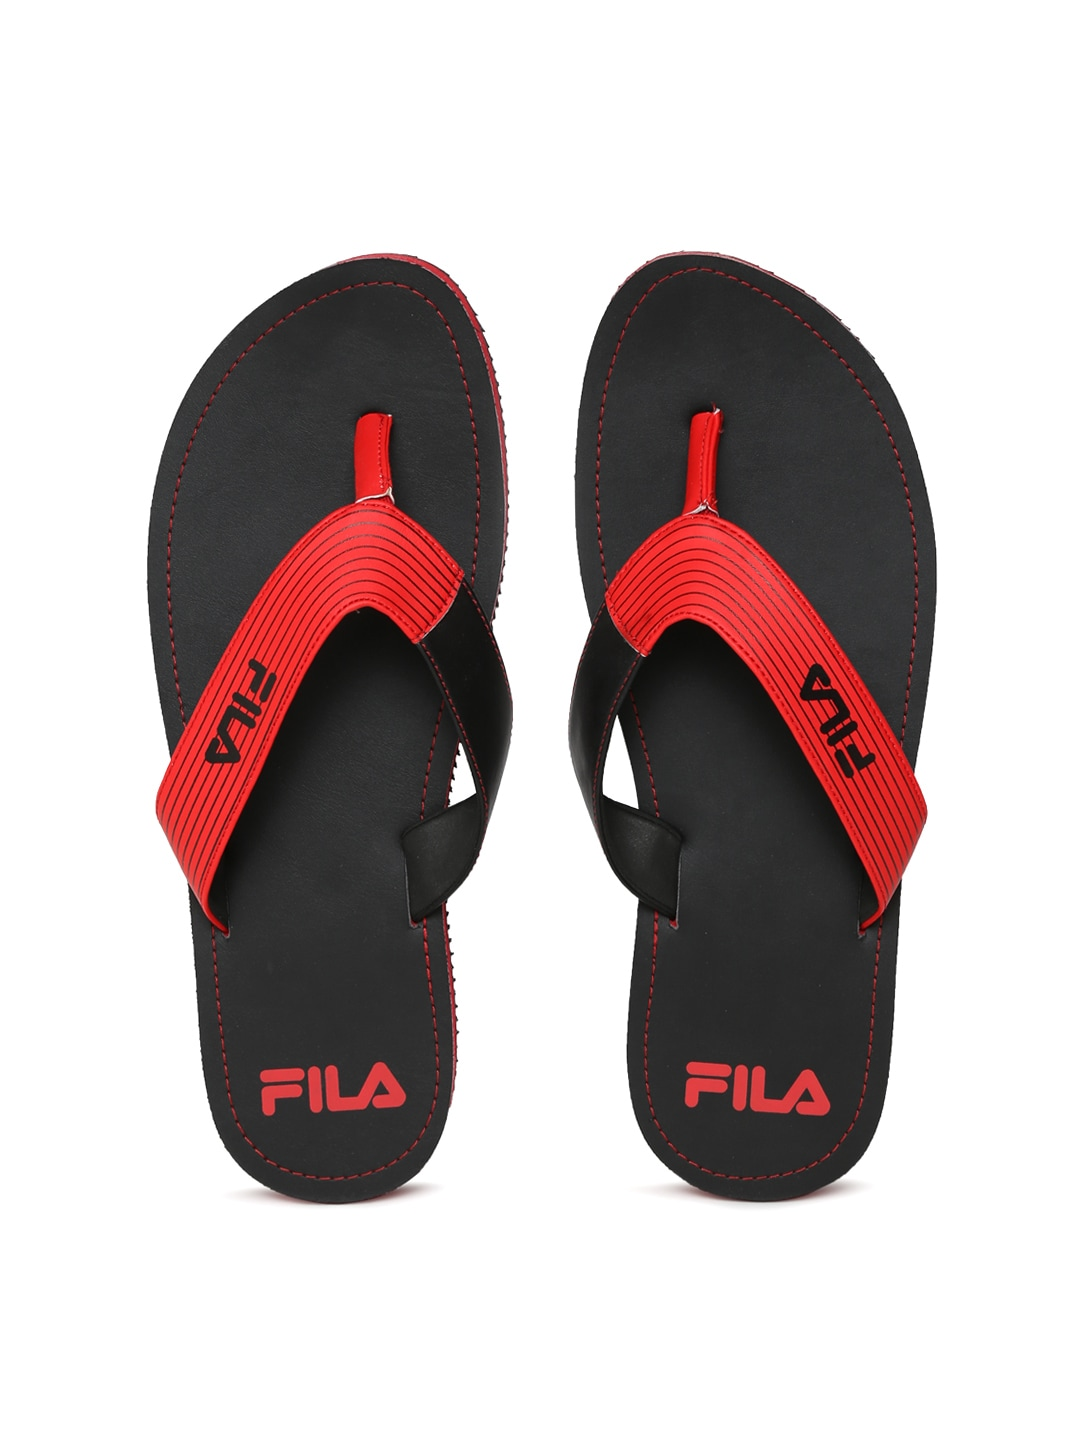 3c8229529d2a45 Fila - Exclusive Fila Online Store in India at Myntra